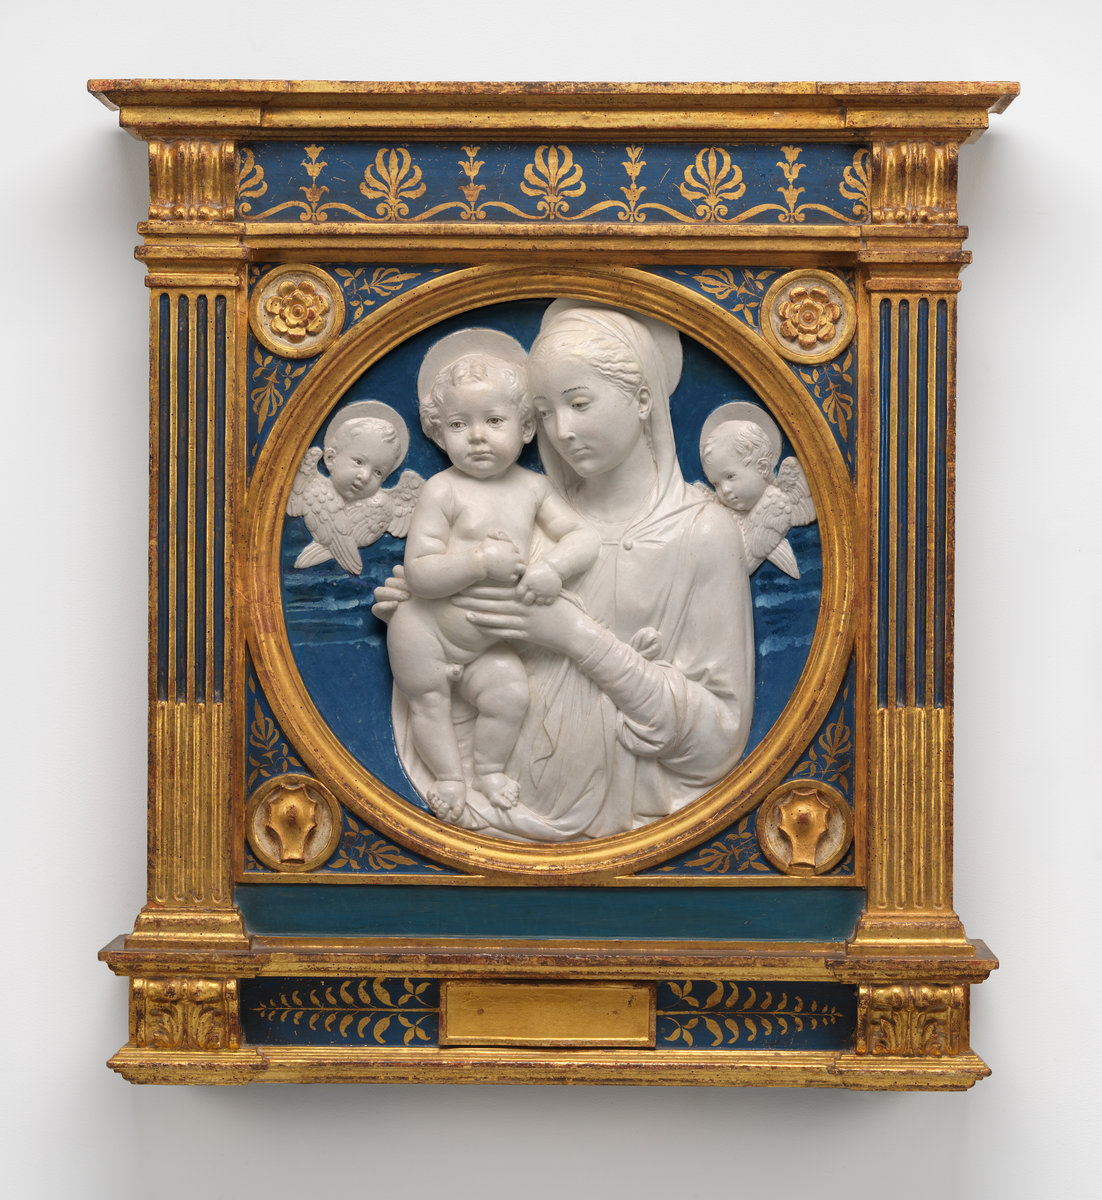 Madonna and Child with Cherubim by Andrea della Robbia, glazed terra cotta, circa 1485. Currently in the collections of the National Gallery of Art, Washington, D.C.